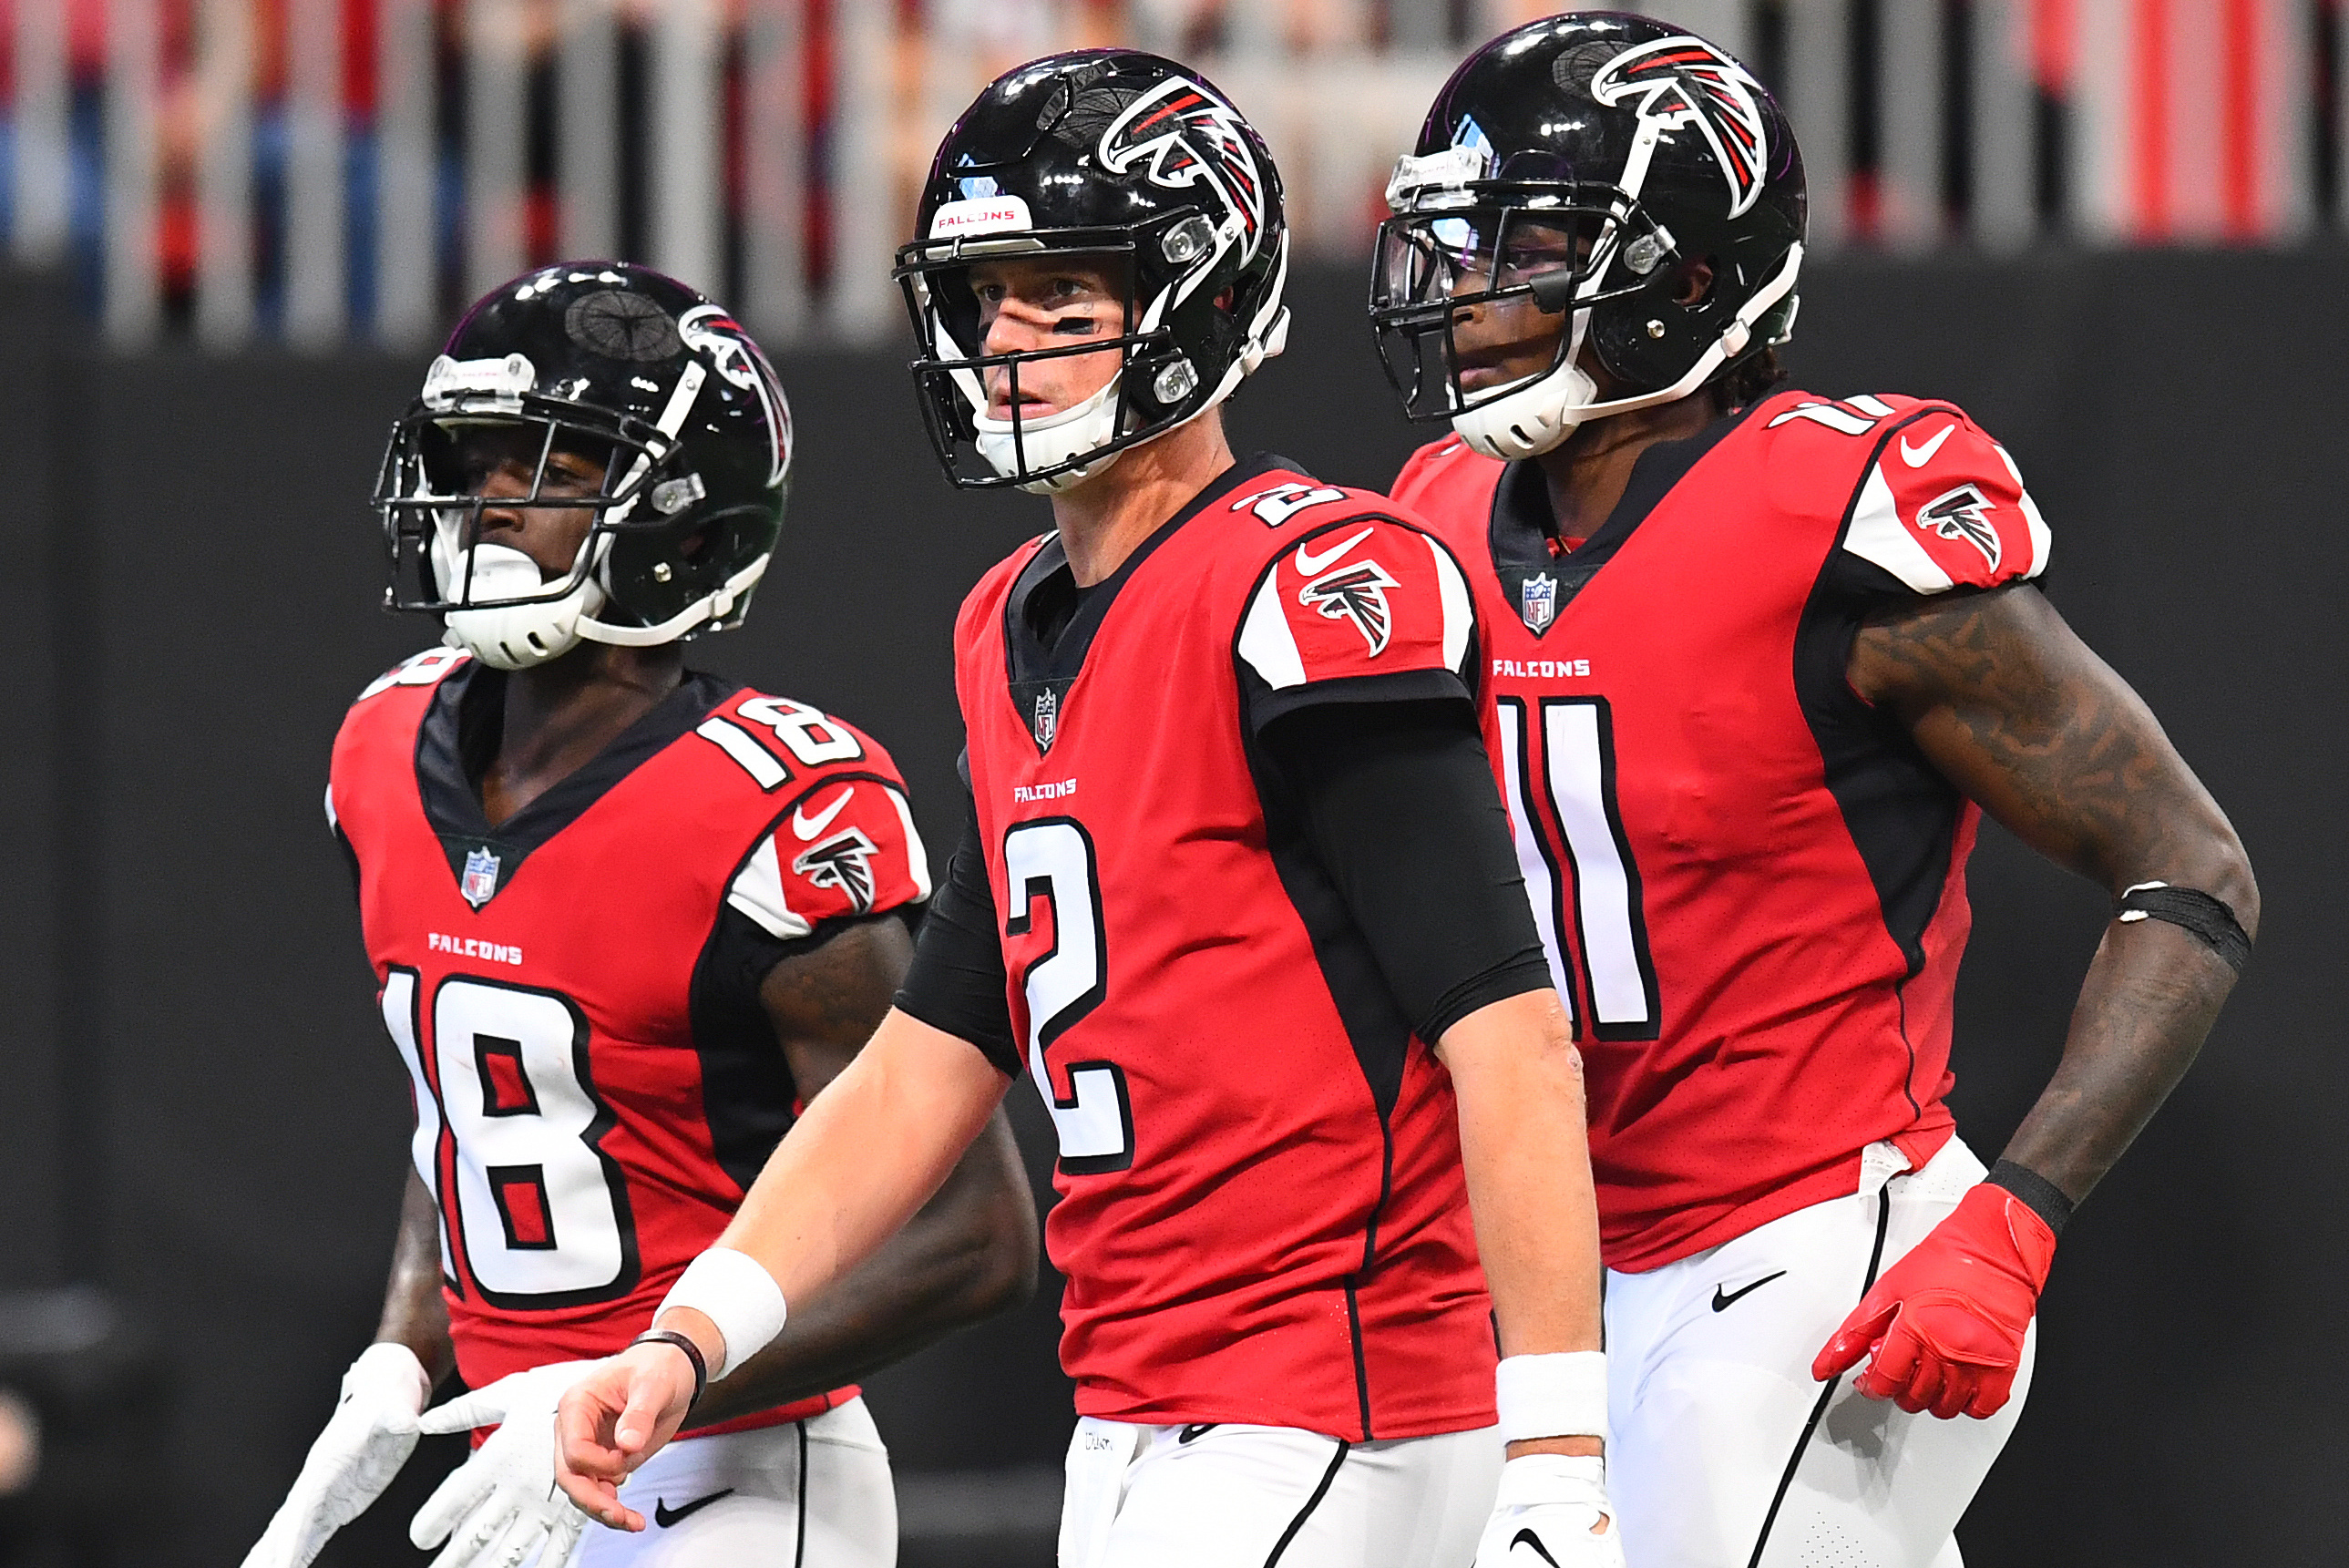 Matt Ryan Says Current Falcons Offense 'Right Up There' with 2012 Squad    Bleacher Report   Latest News, Videos and Highlights